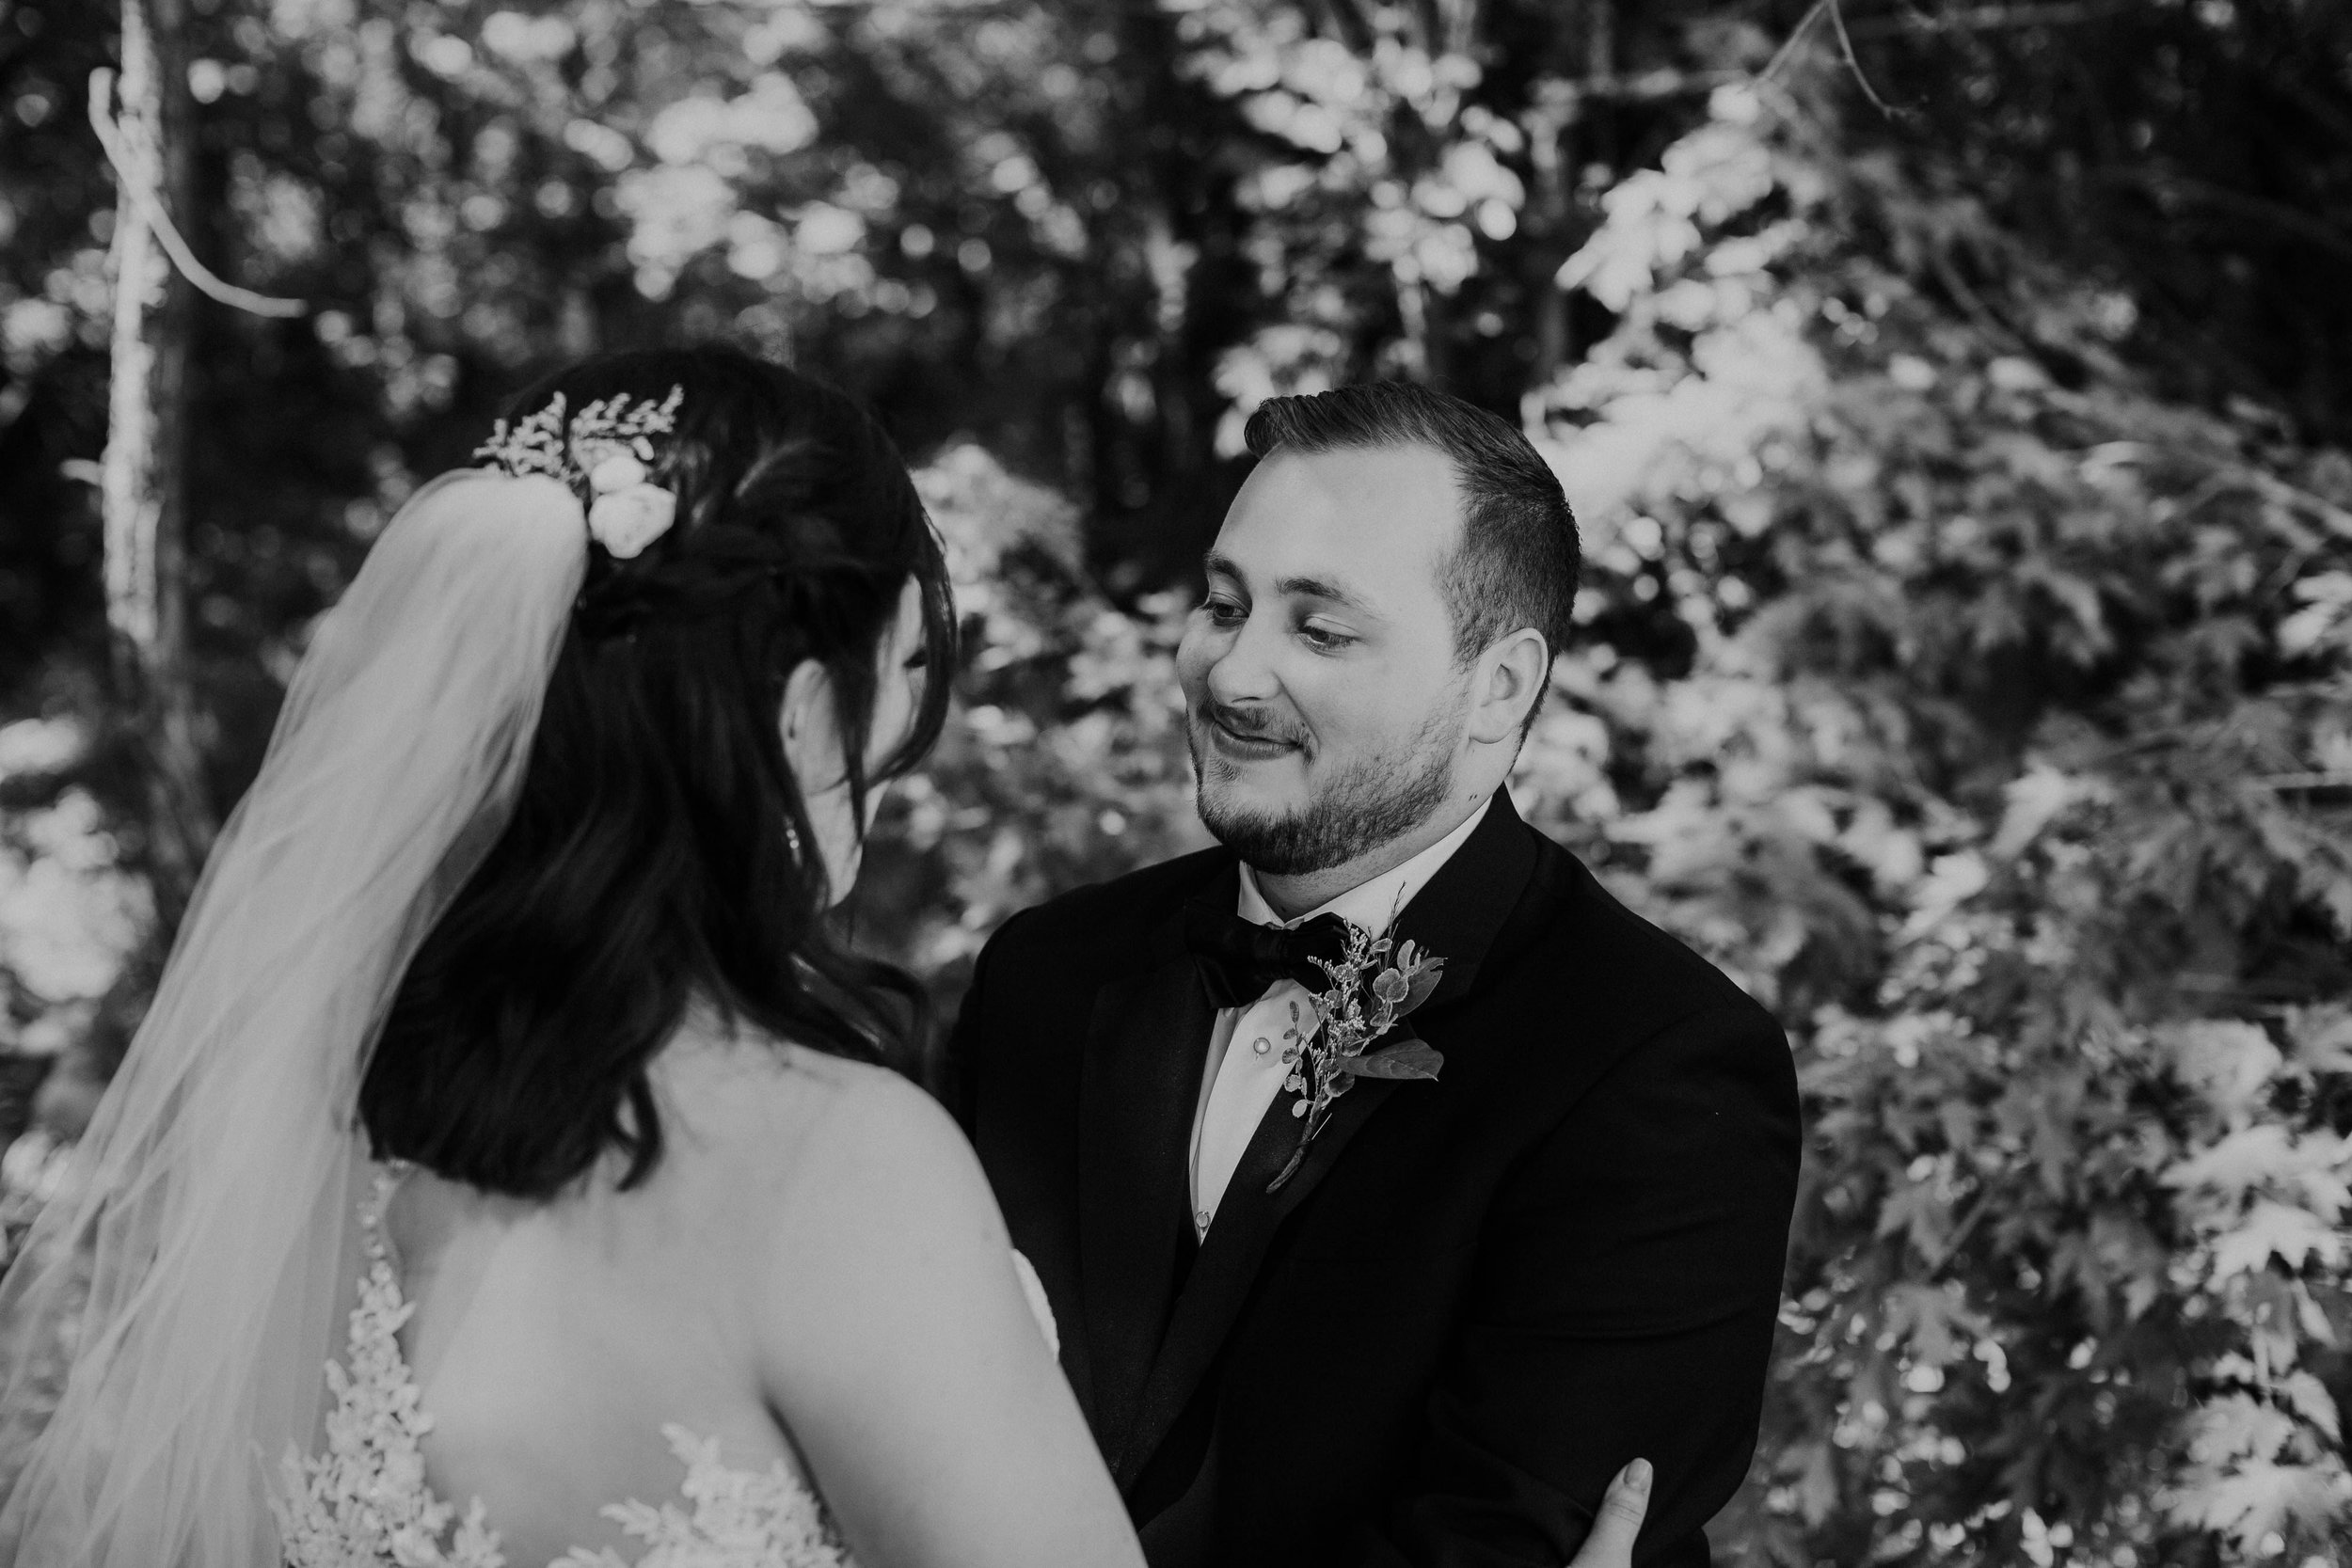 columbus ohio wedding photographer grace e jones photography33.jpg